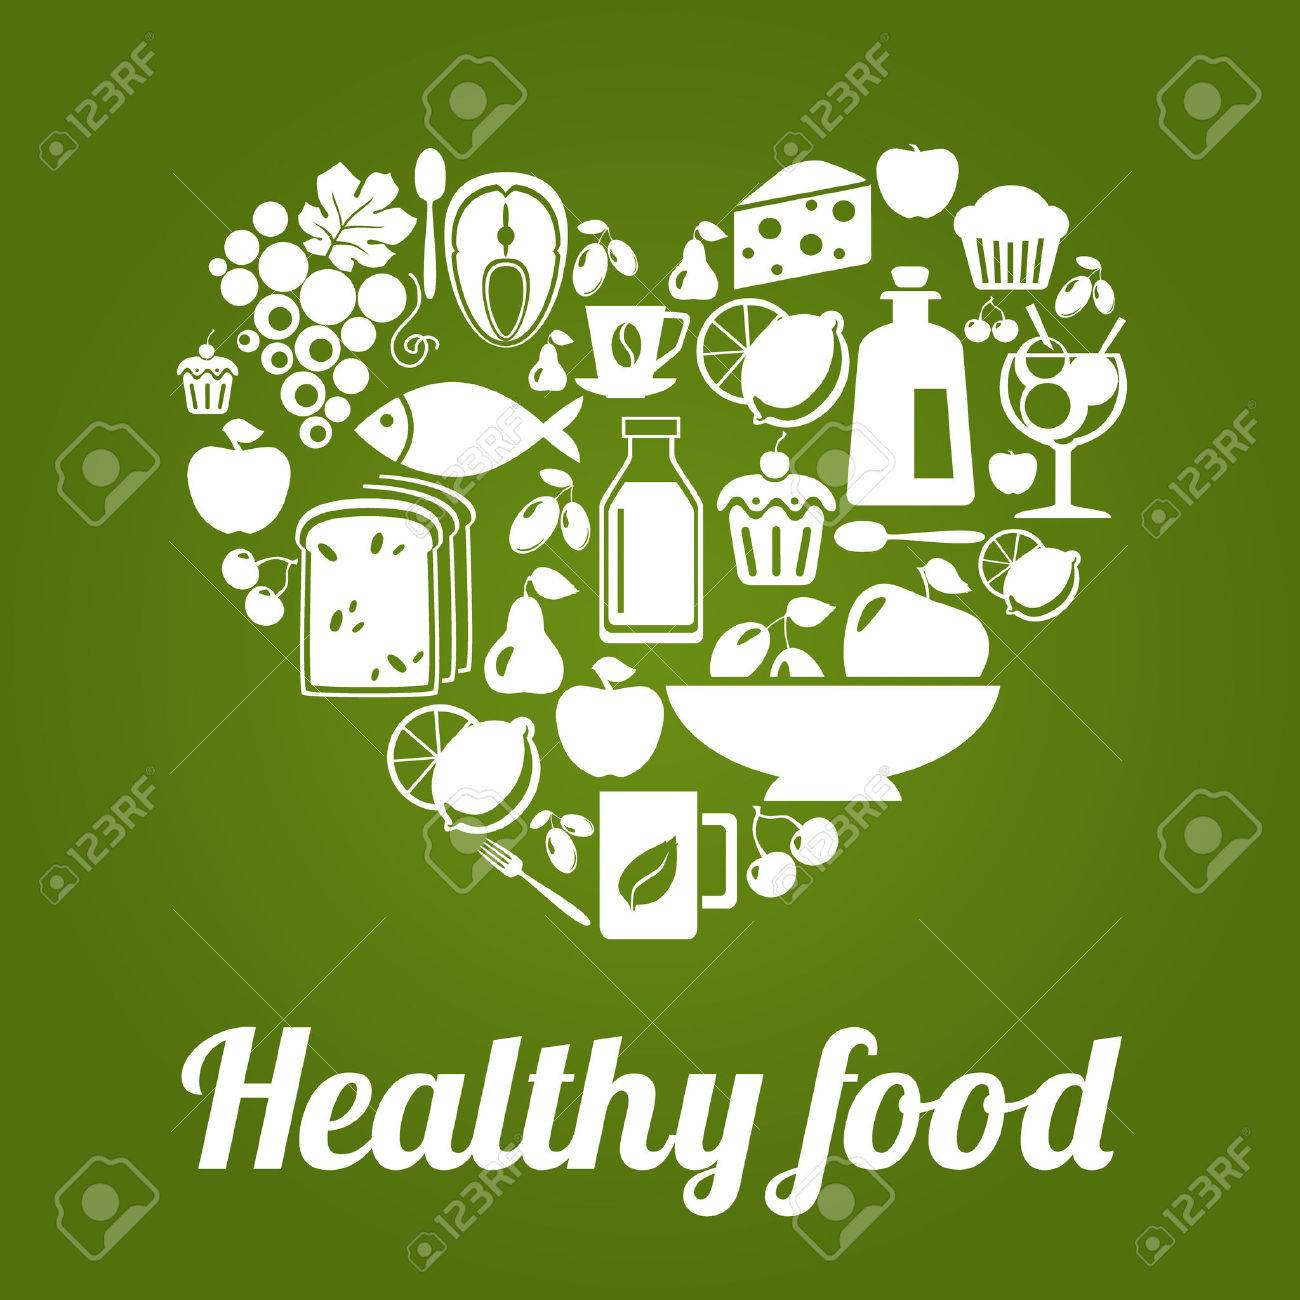 healthy food concept, vintage style, heart shape. vector illustration Stock Vector - 46373088